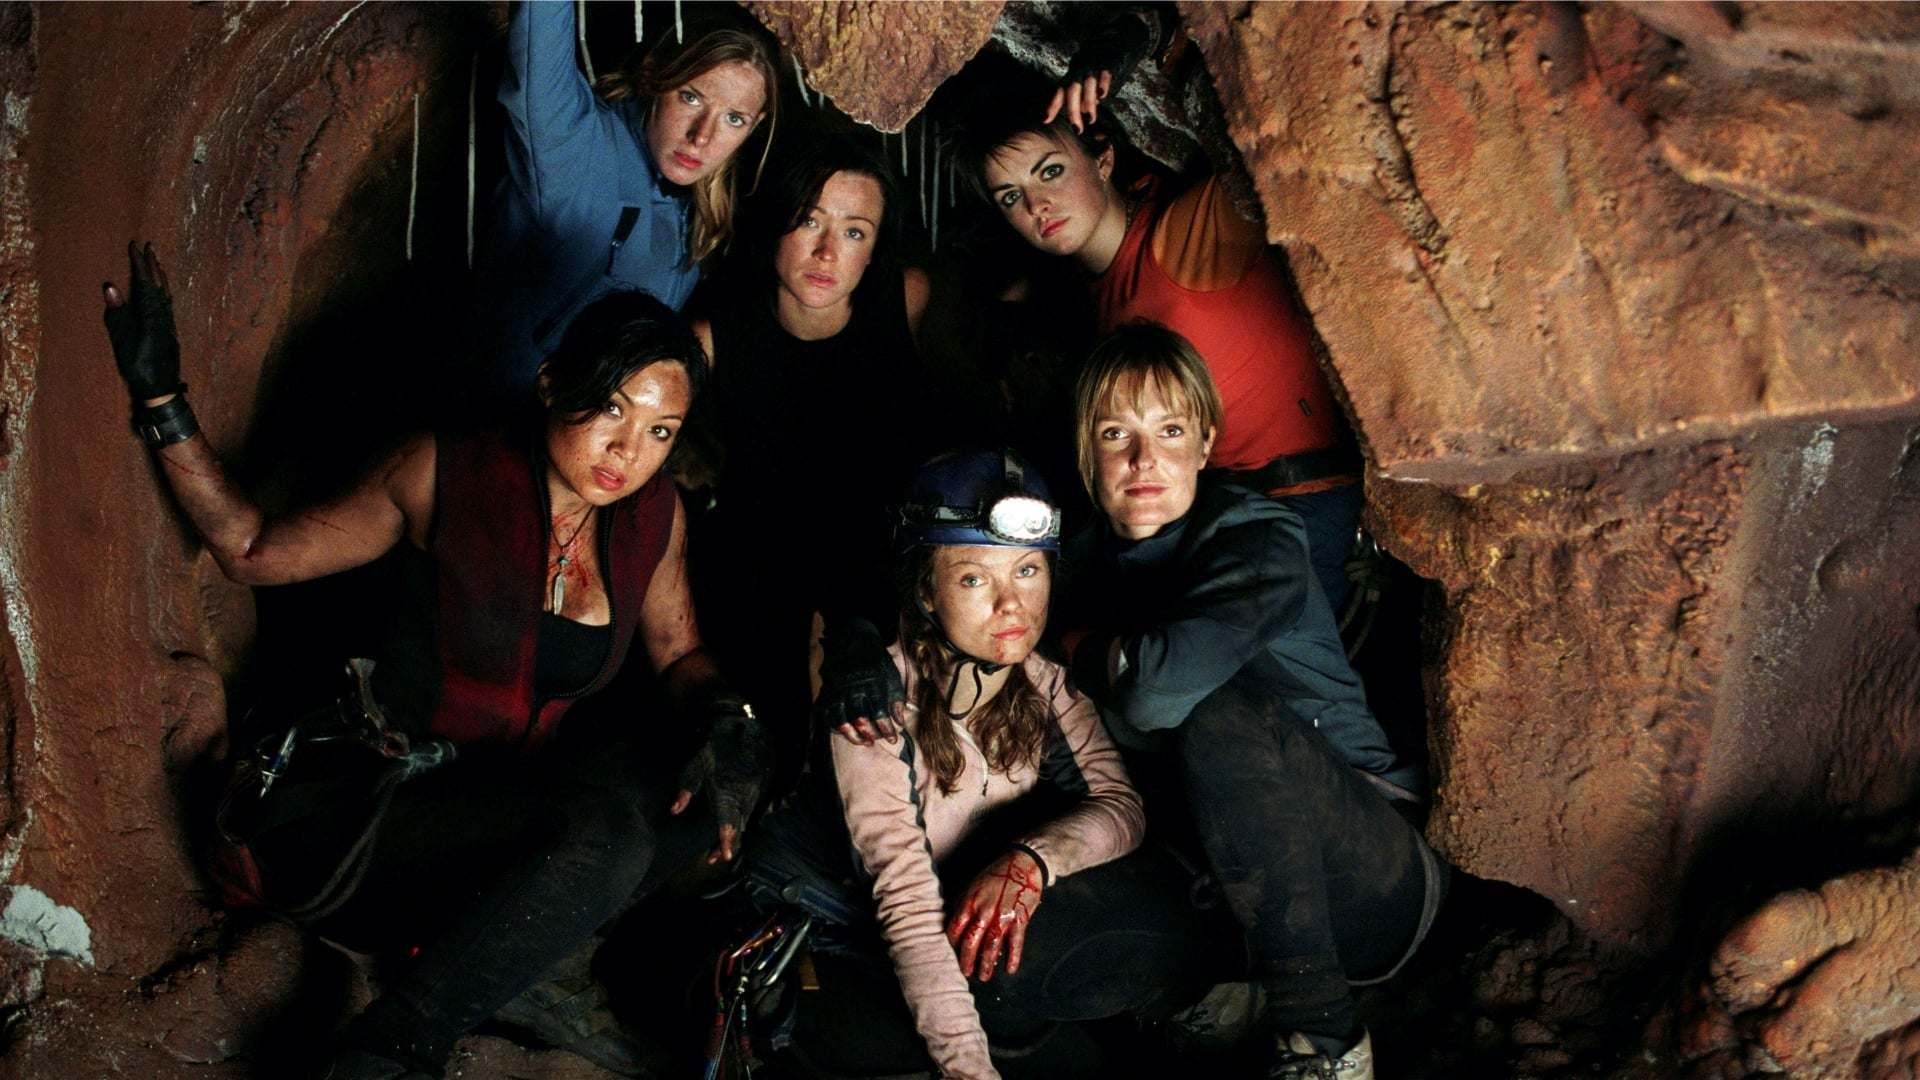 Filmszene aus The Descent